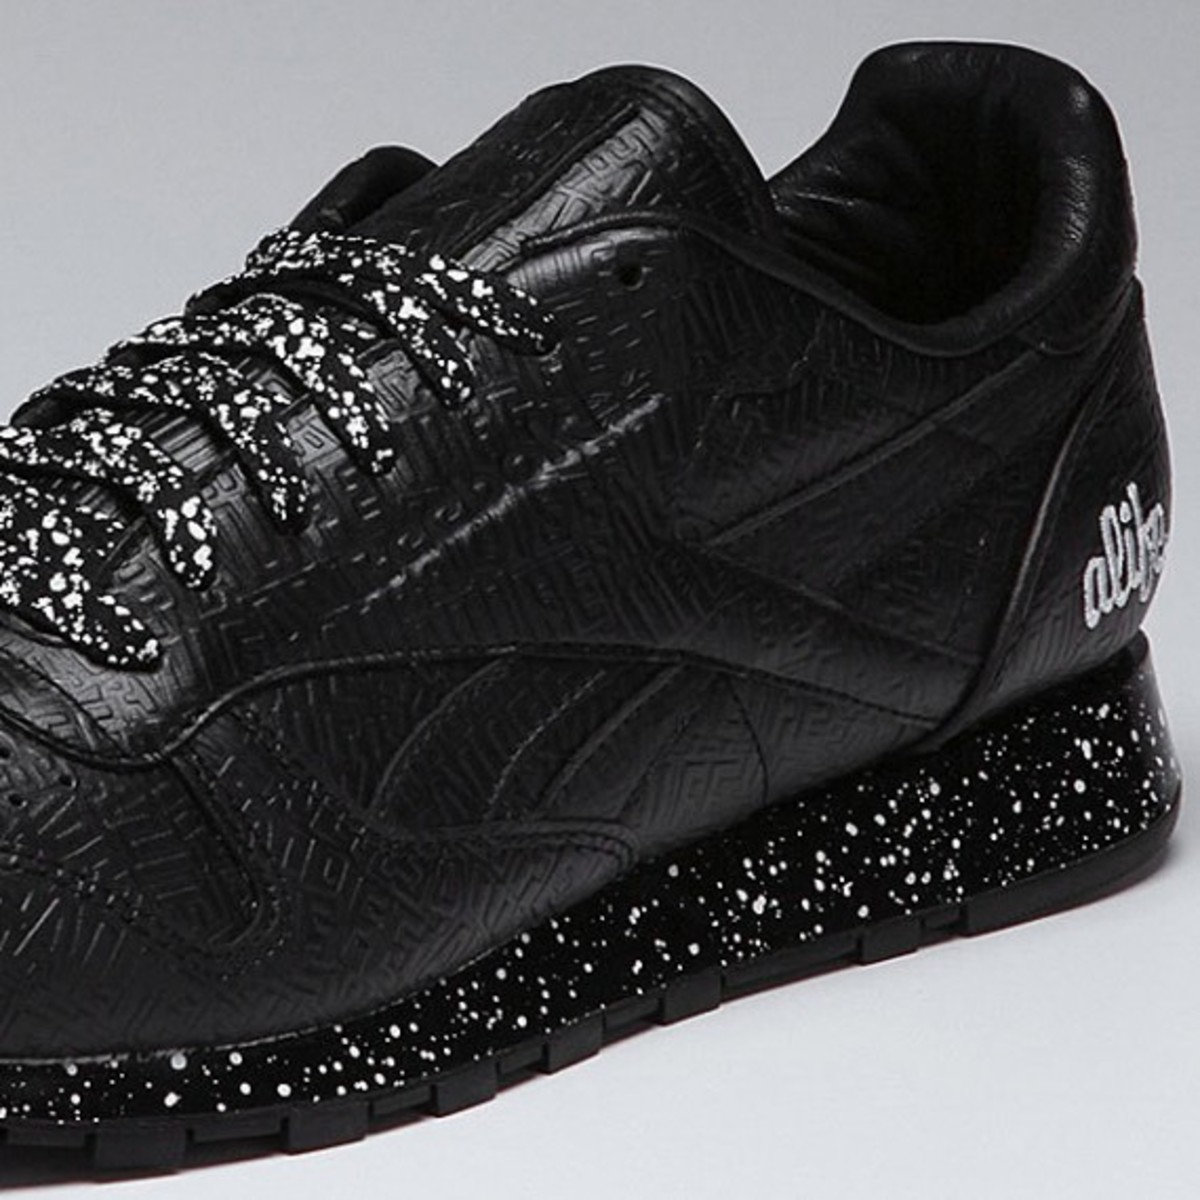 alife-reebok-classic-leather-lux-black-speck-04